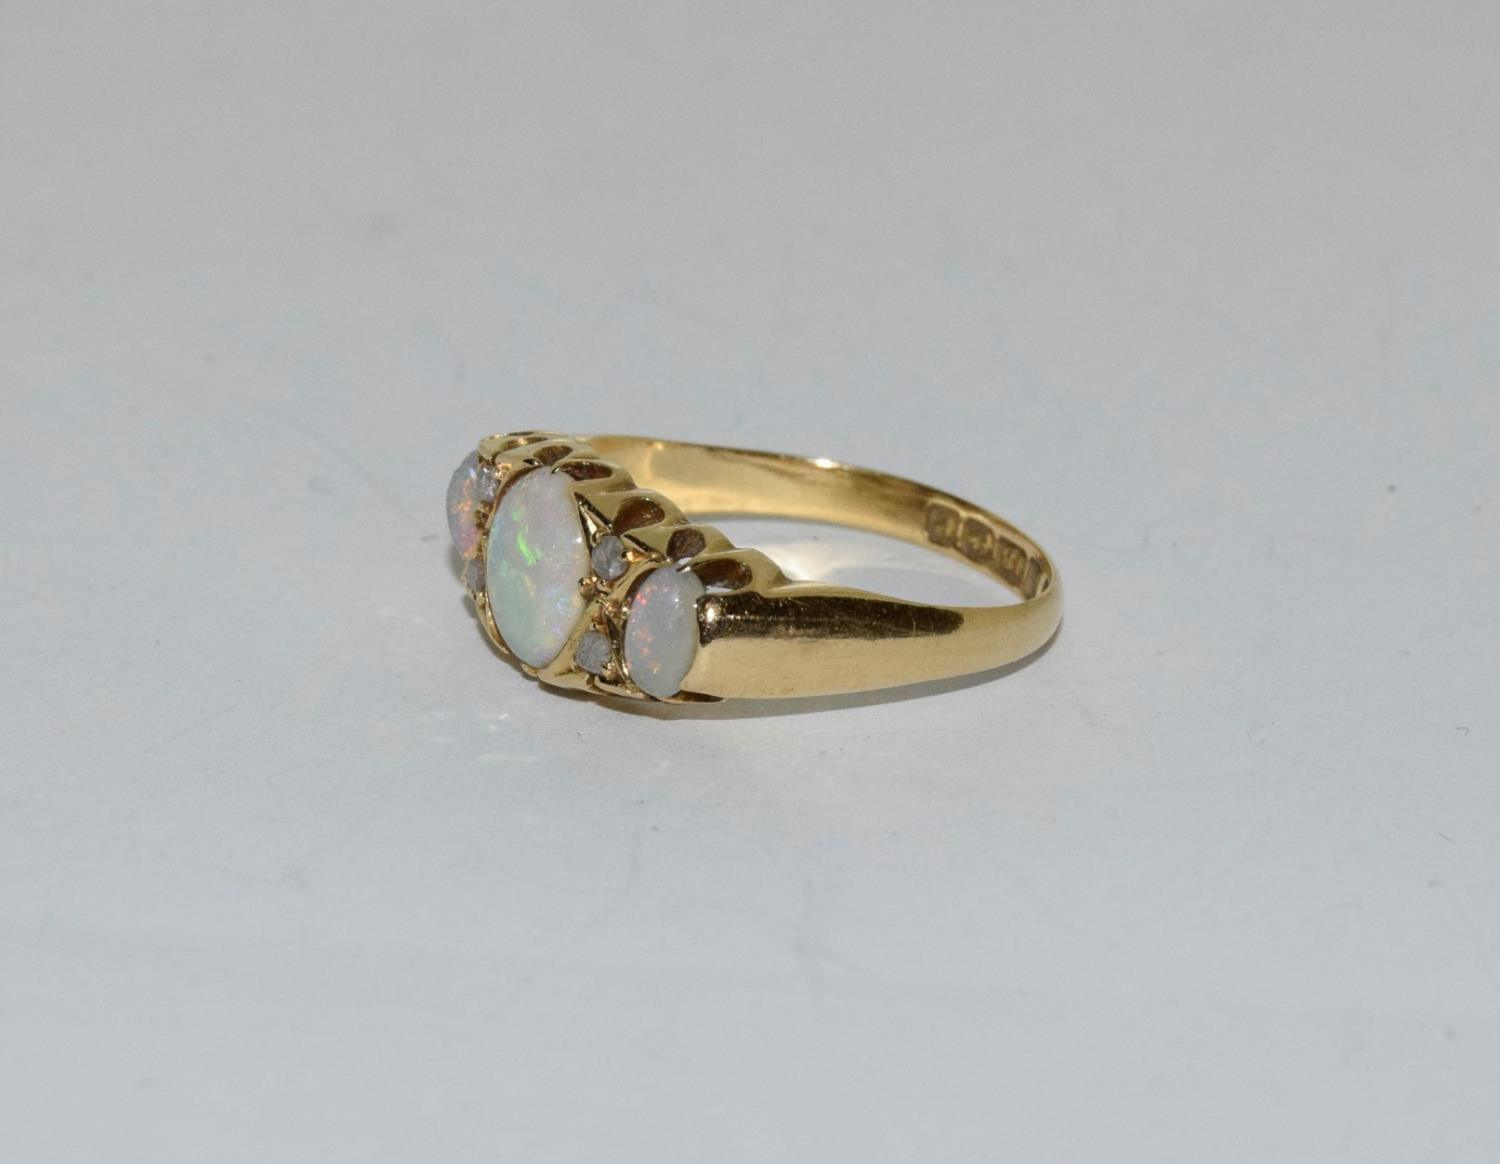 Antique 18ct gold opal/diamond boxed ring, Size P - Image 4 of 6